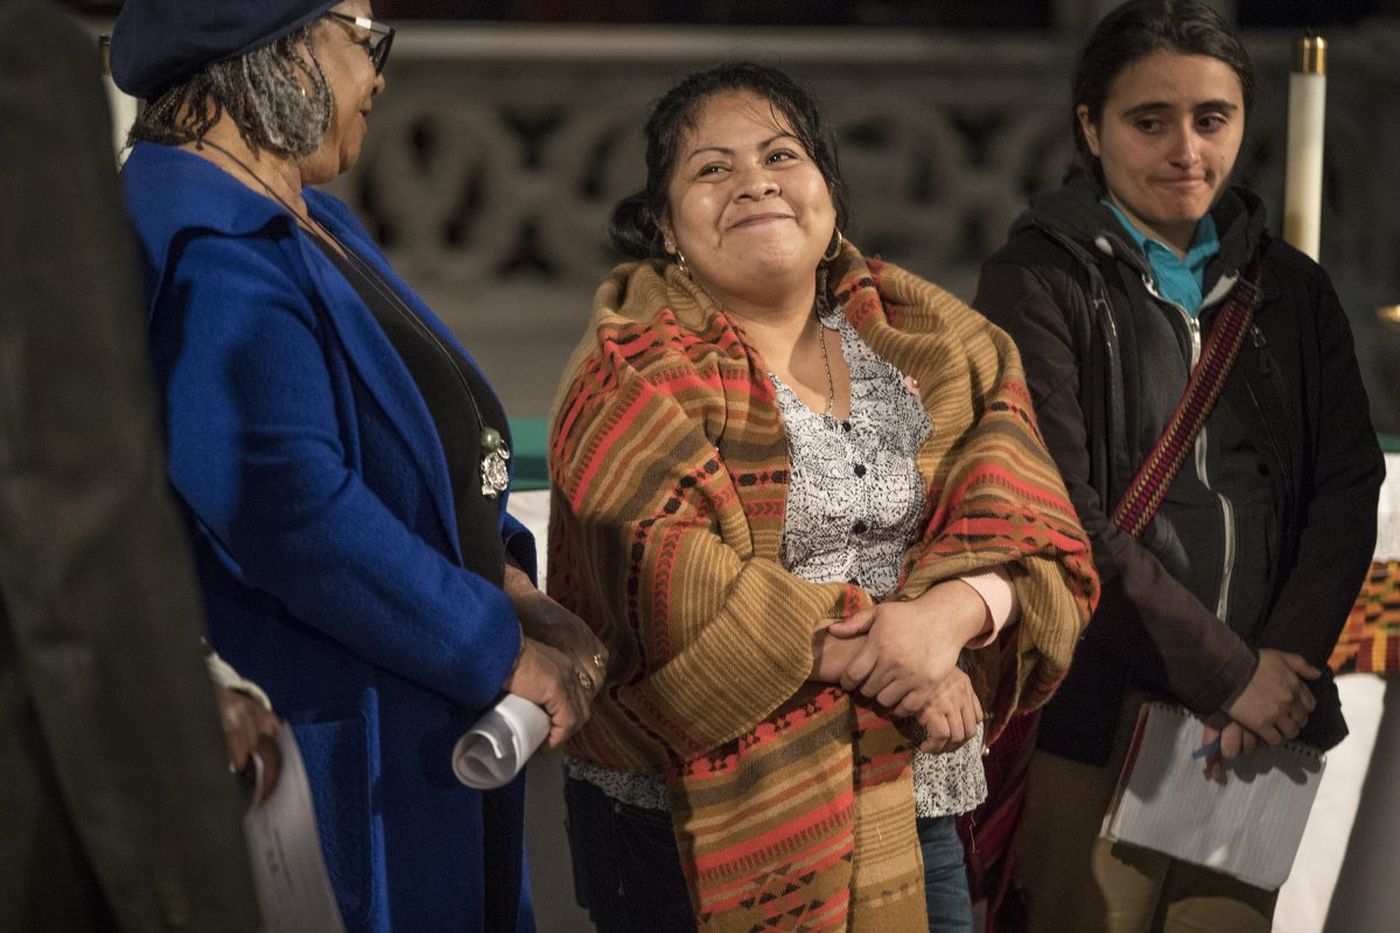 U.S. Rep. Bob Brady introduces bill to protect undocumented immigrant family from deportation